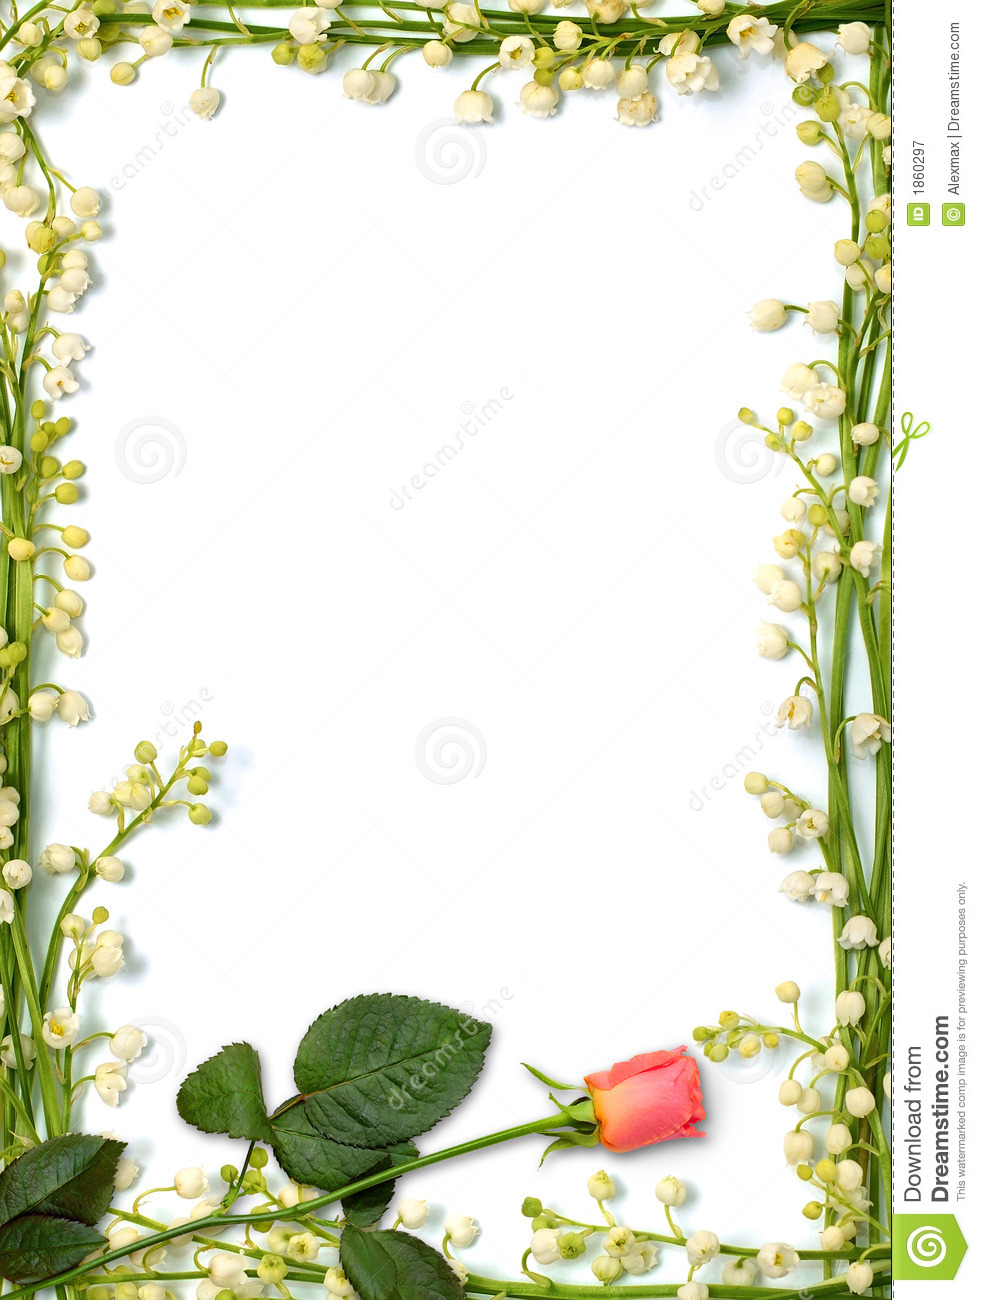 Love letter background stock image. Image of lilies, letter - 1860297